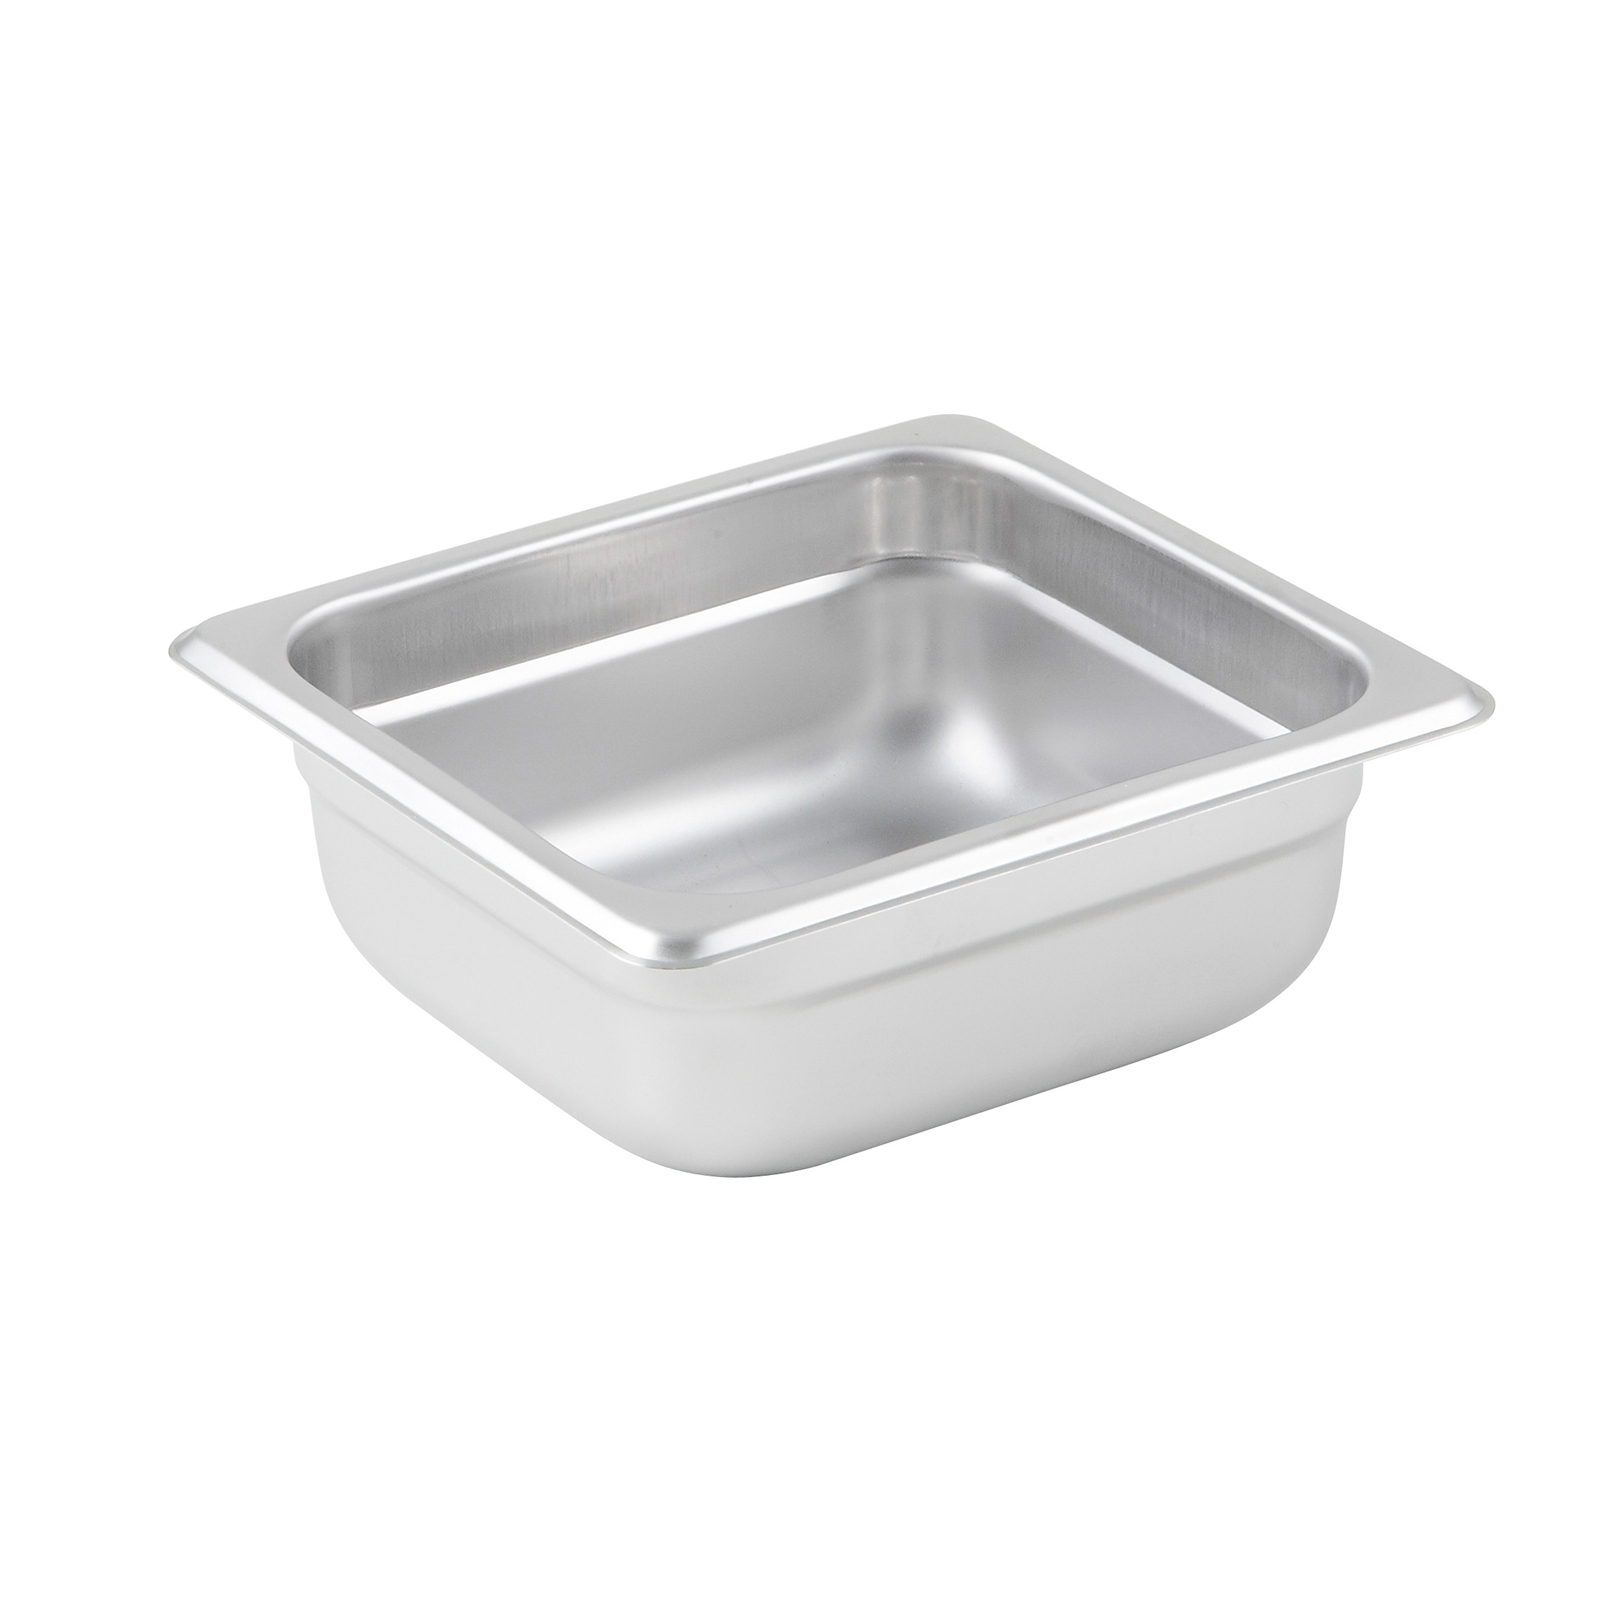 Winco SPJL-602 steam table pan, stainless steel